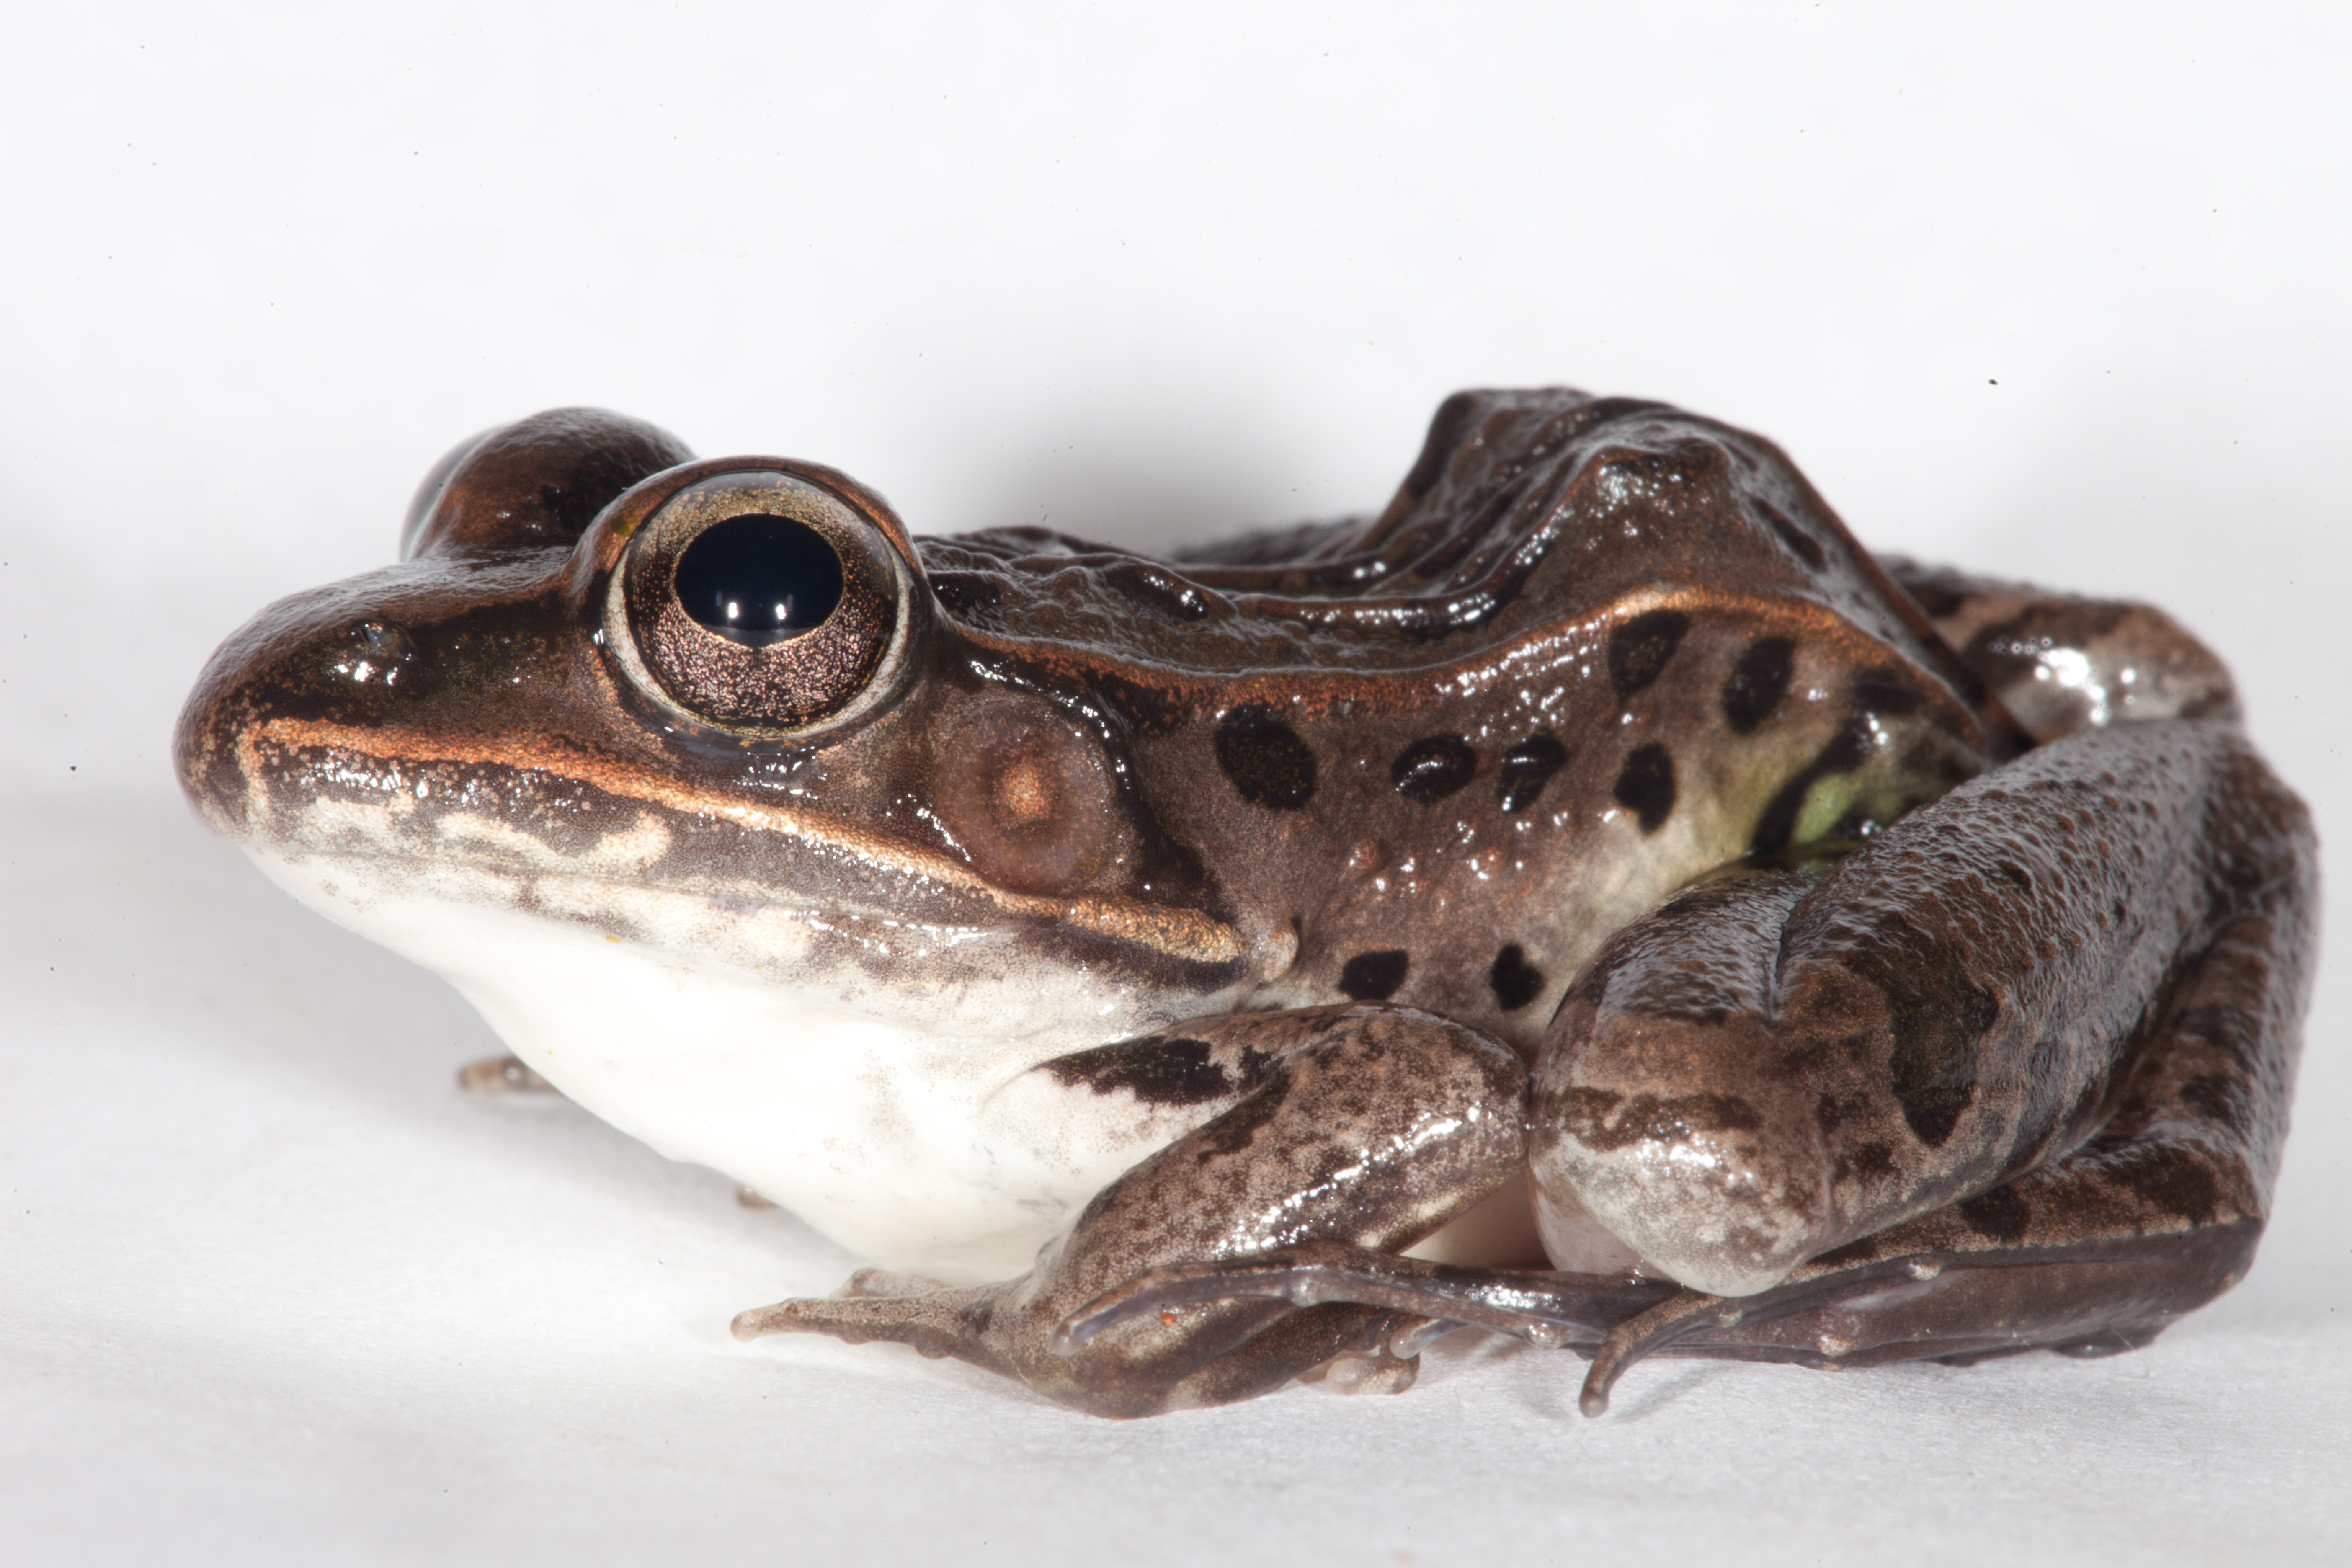 Leopard frog photo